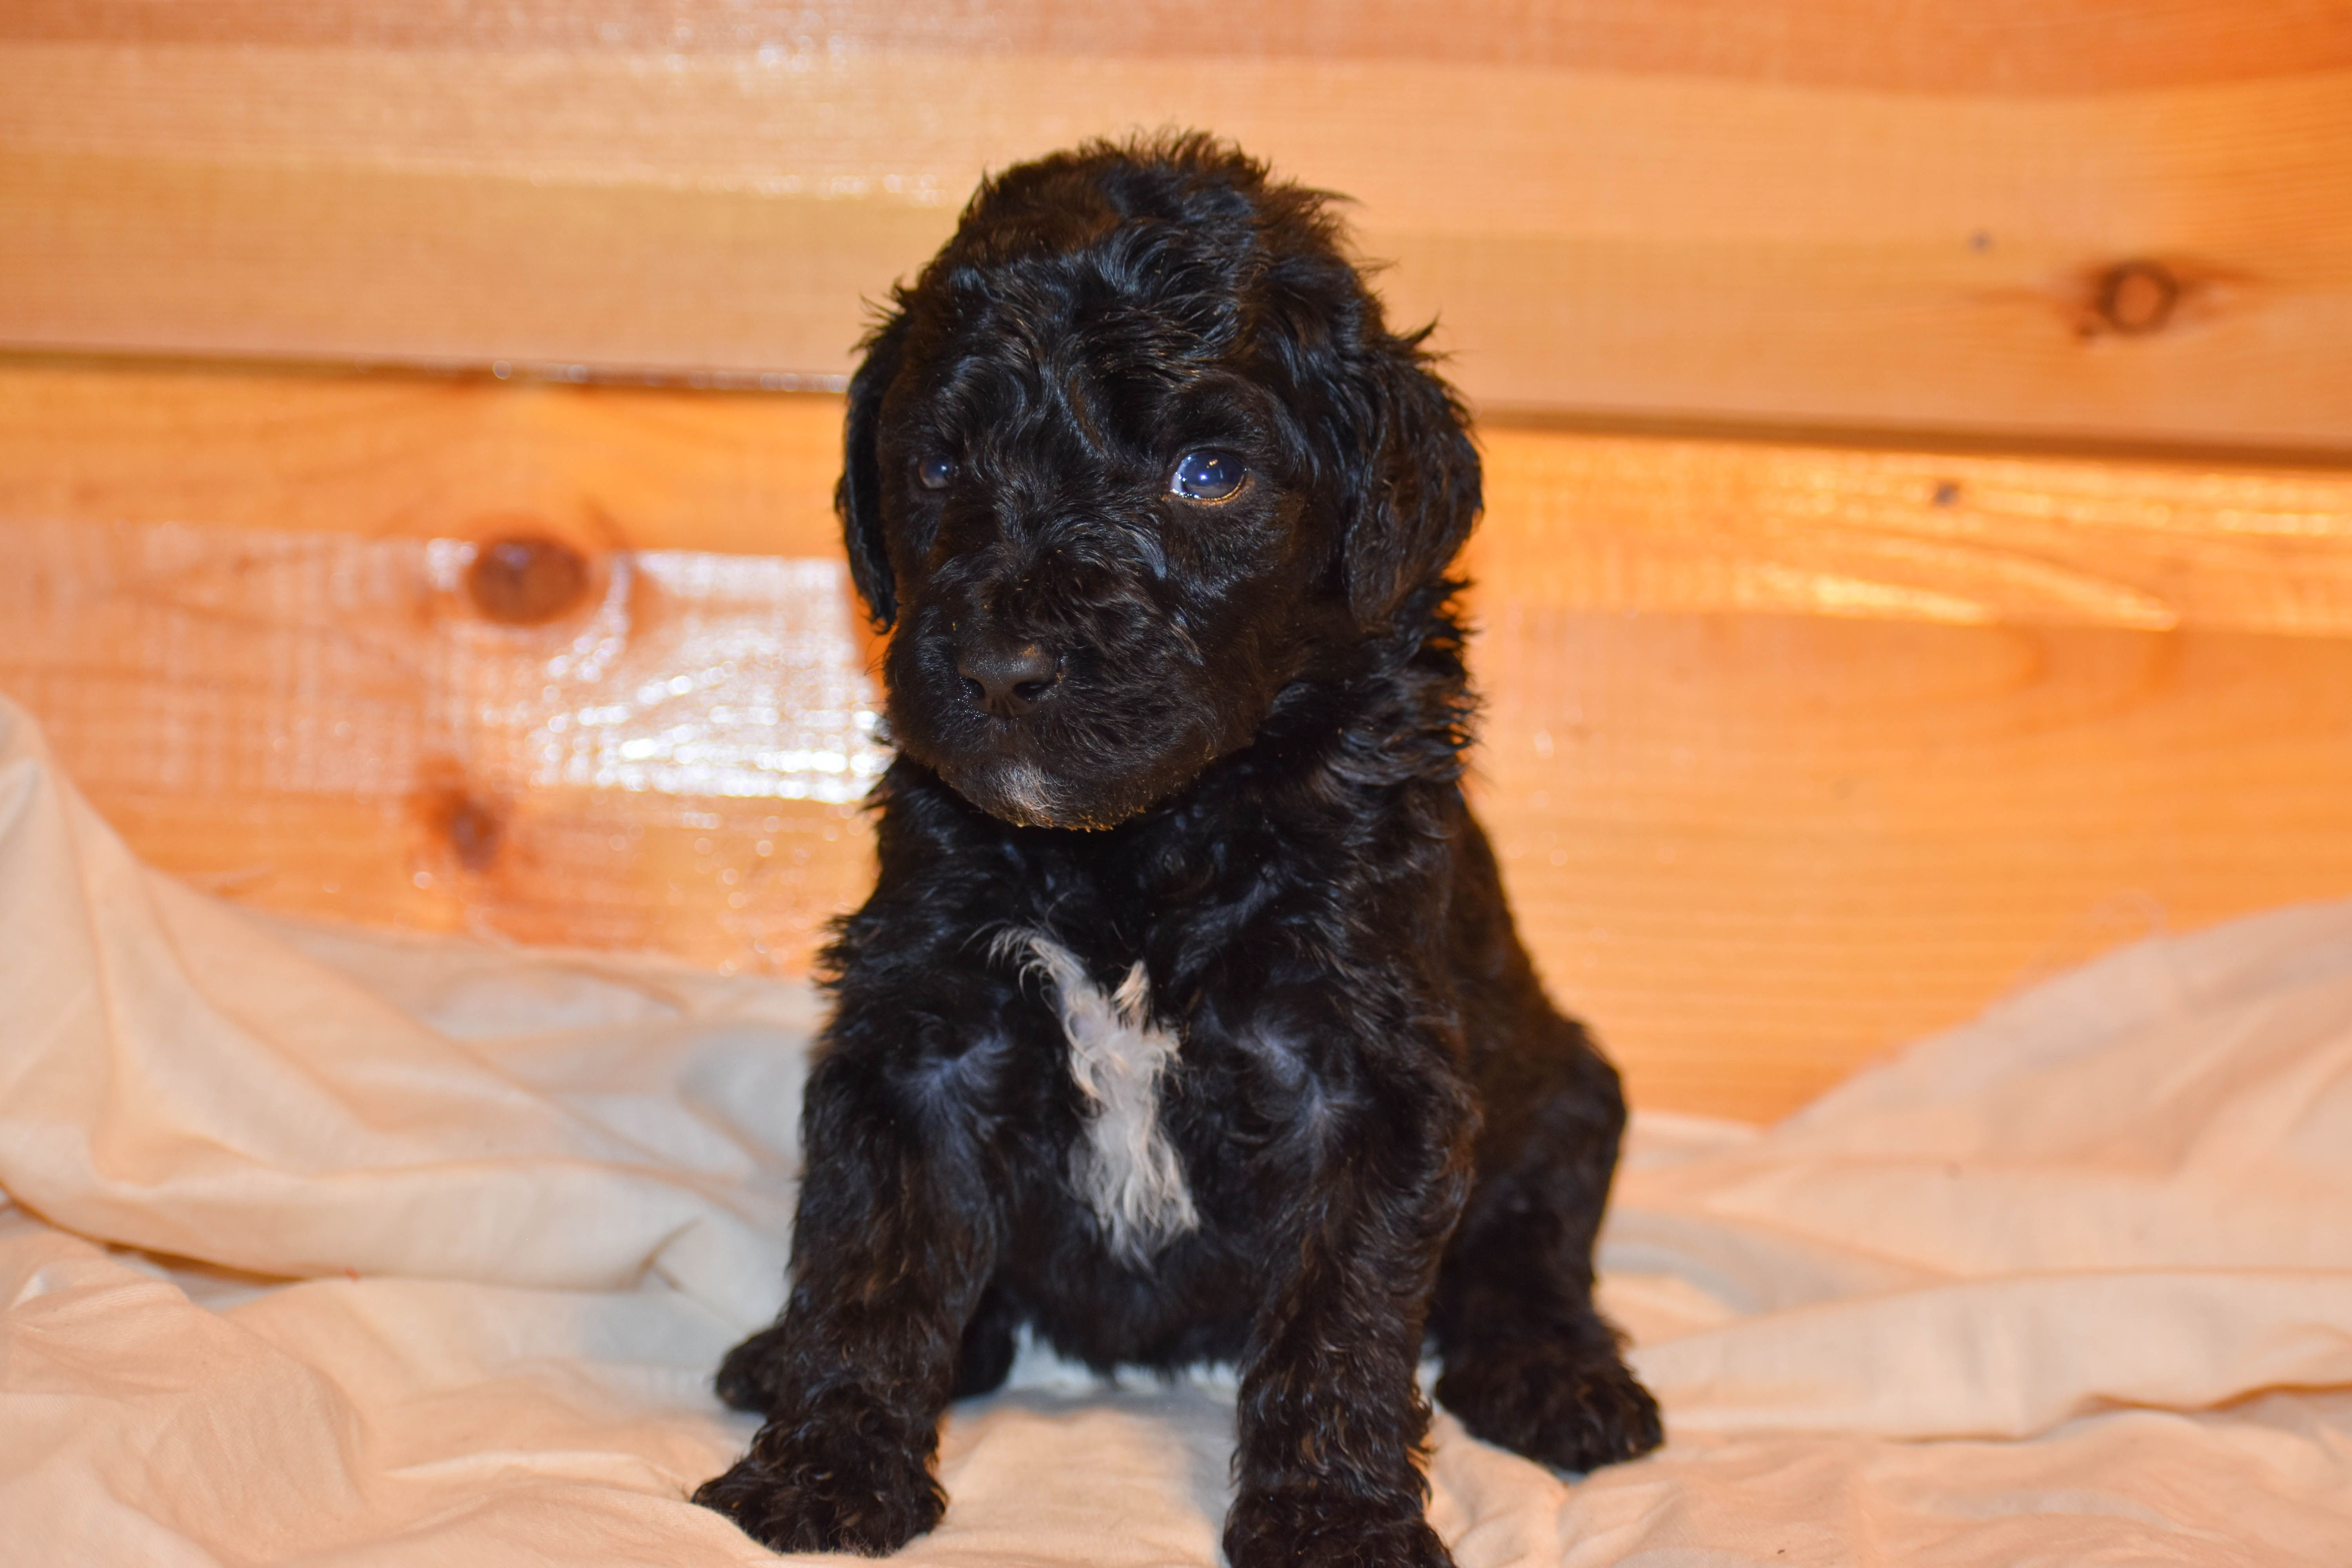 Mickey A New Male Bernedoodle Puppy For Sale In Flora Illinois Find Cute Bernedoodle Puppies And Cavapoo Puppies Puppies For Sale Cavapoo Puppies For Sale